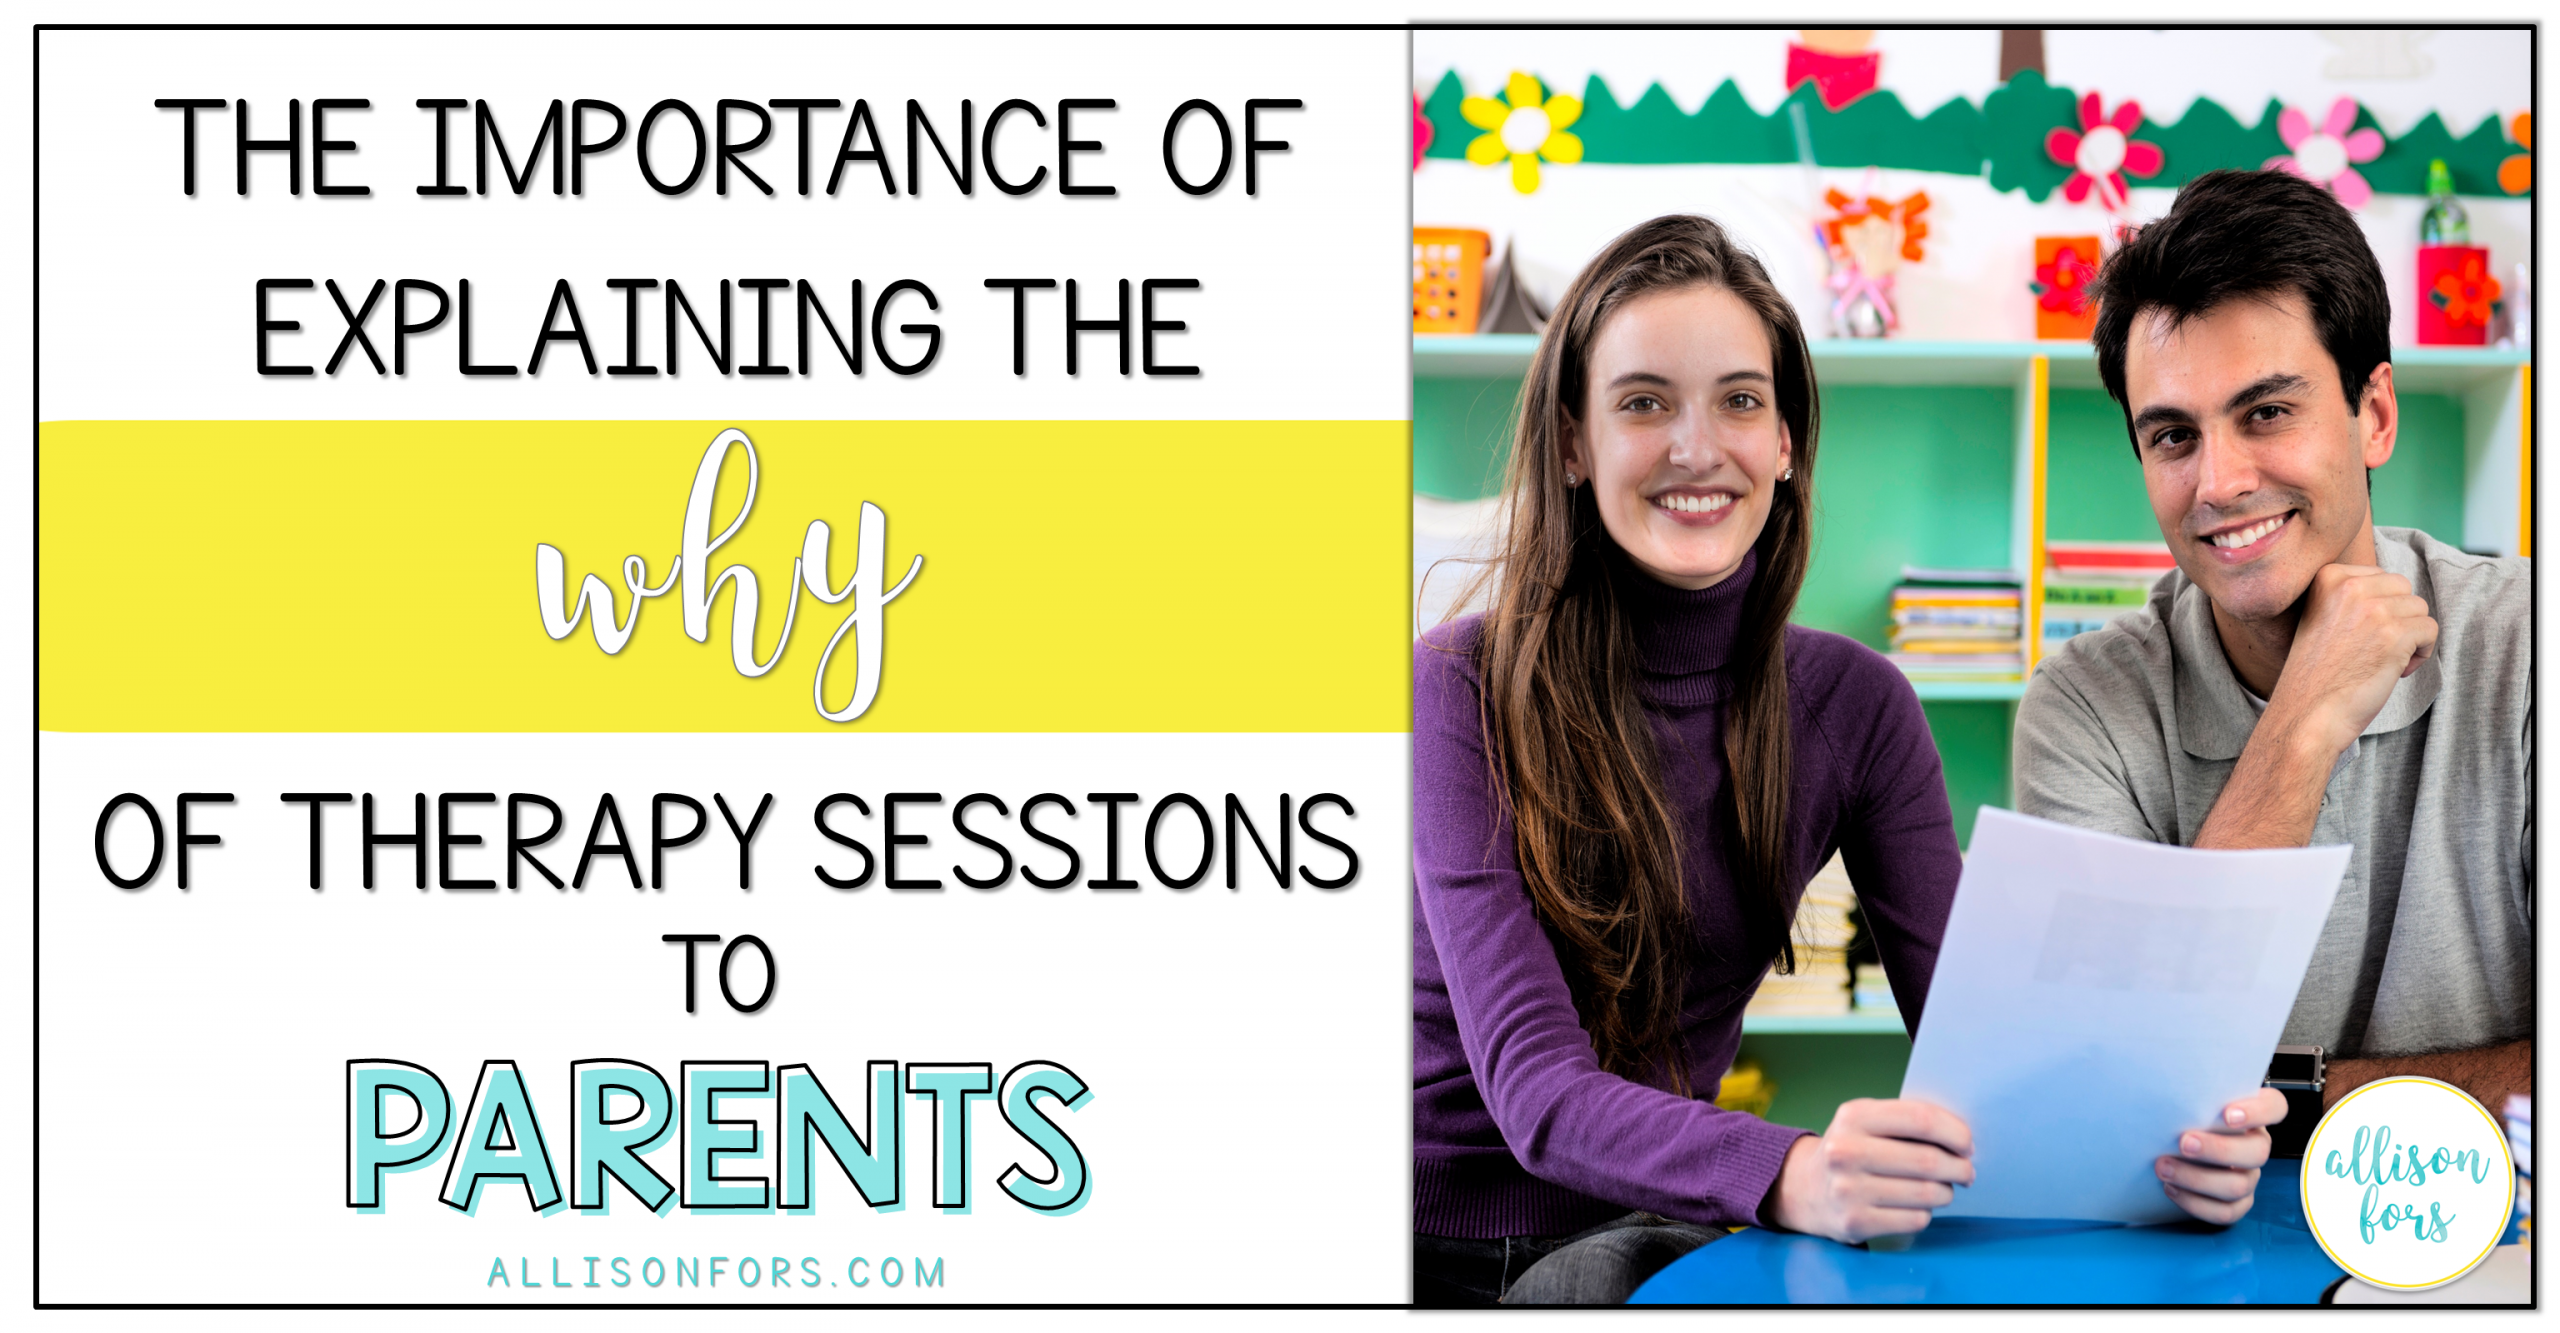 The Importance of Explaining the WHY of Therapy Sessions to Parents